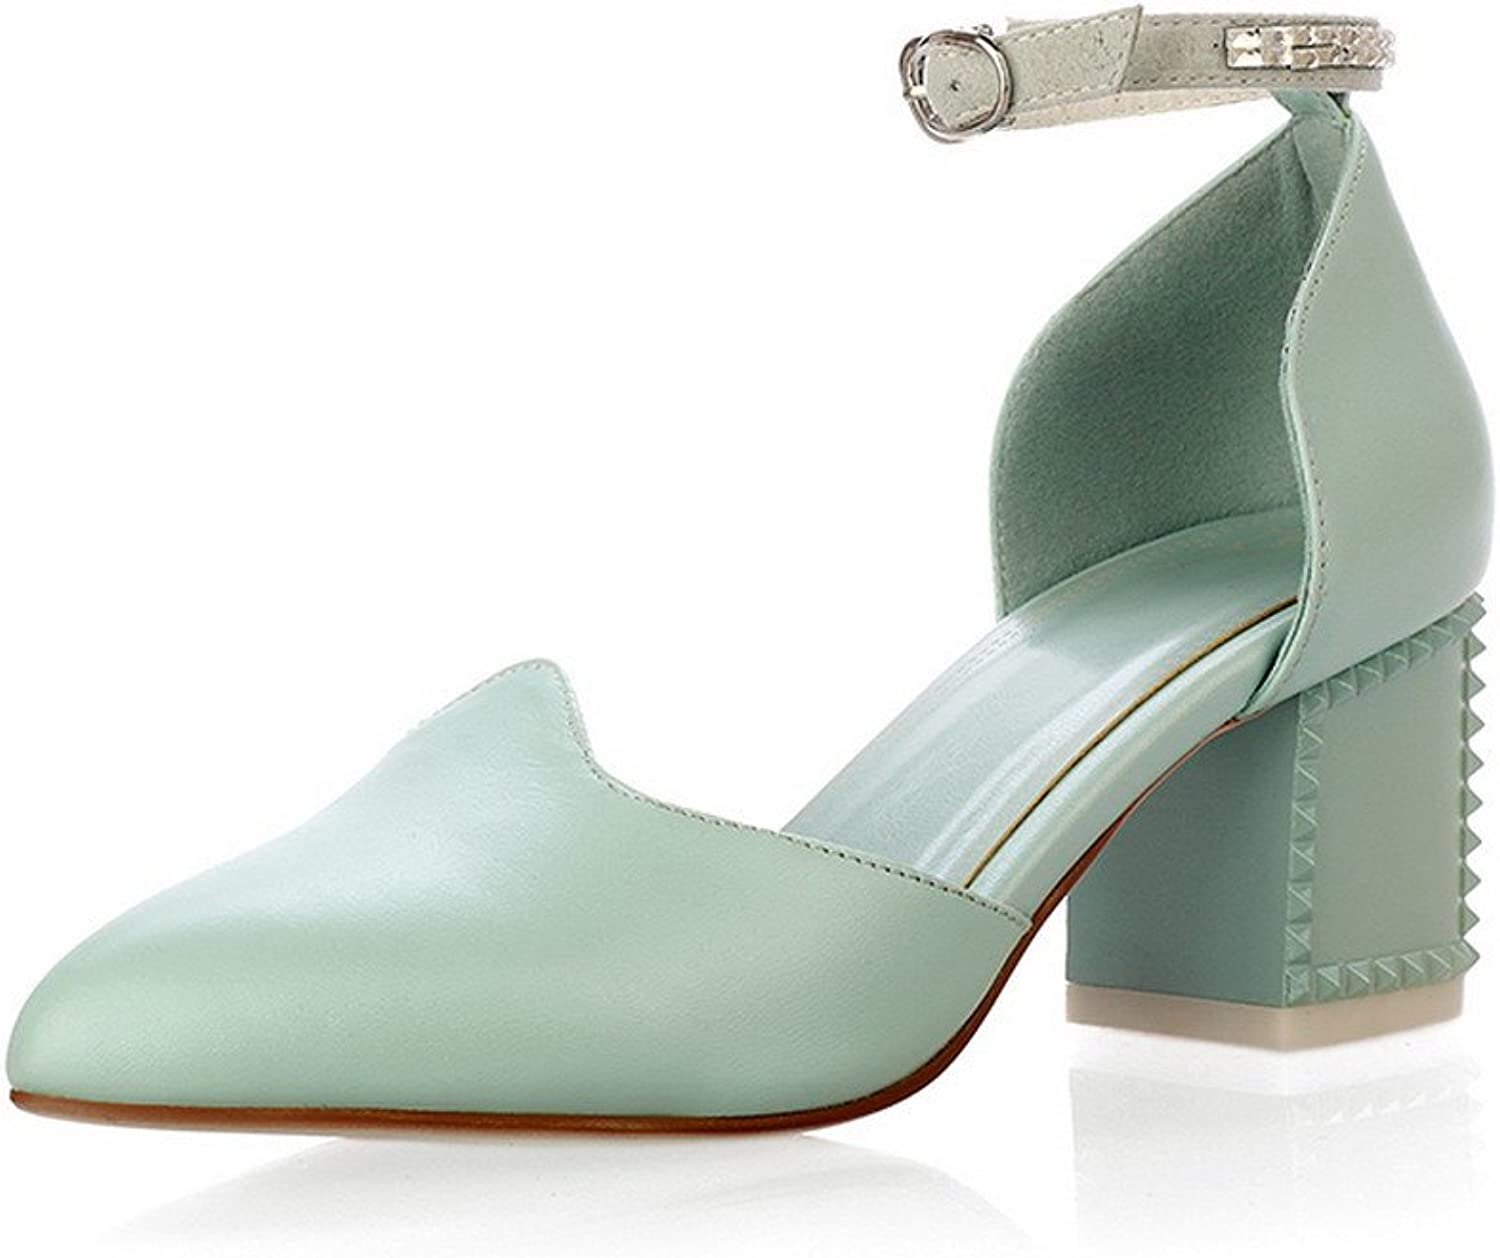 AmoonyFashion Womens Closed Pointed Toe Mid Heel Soft Material PU Solid Pumps, Cyan, 10 B(M) US